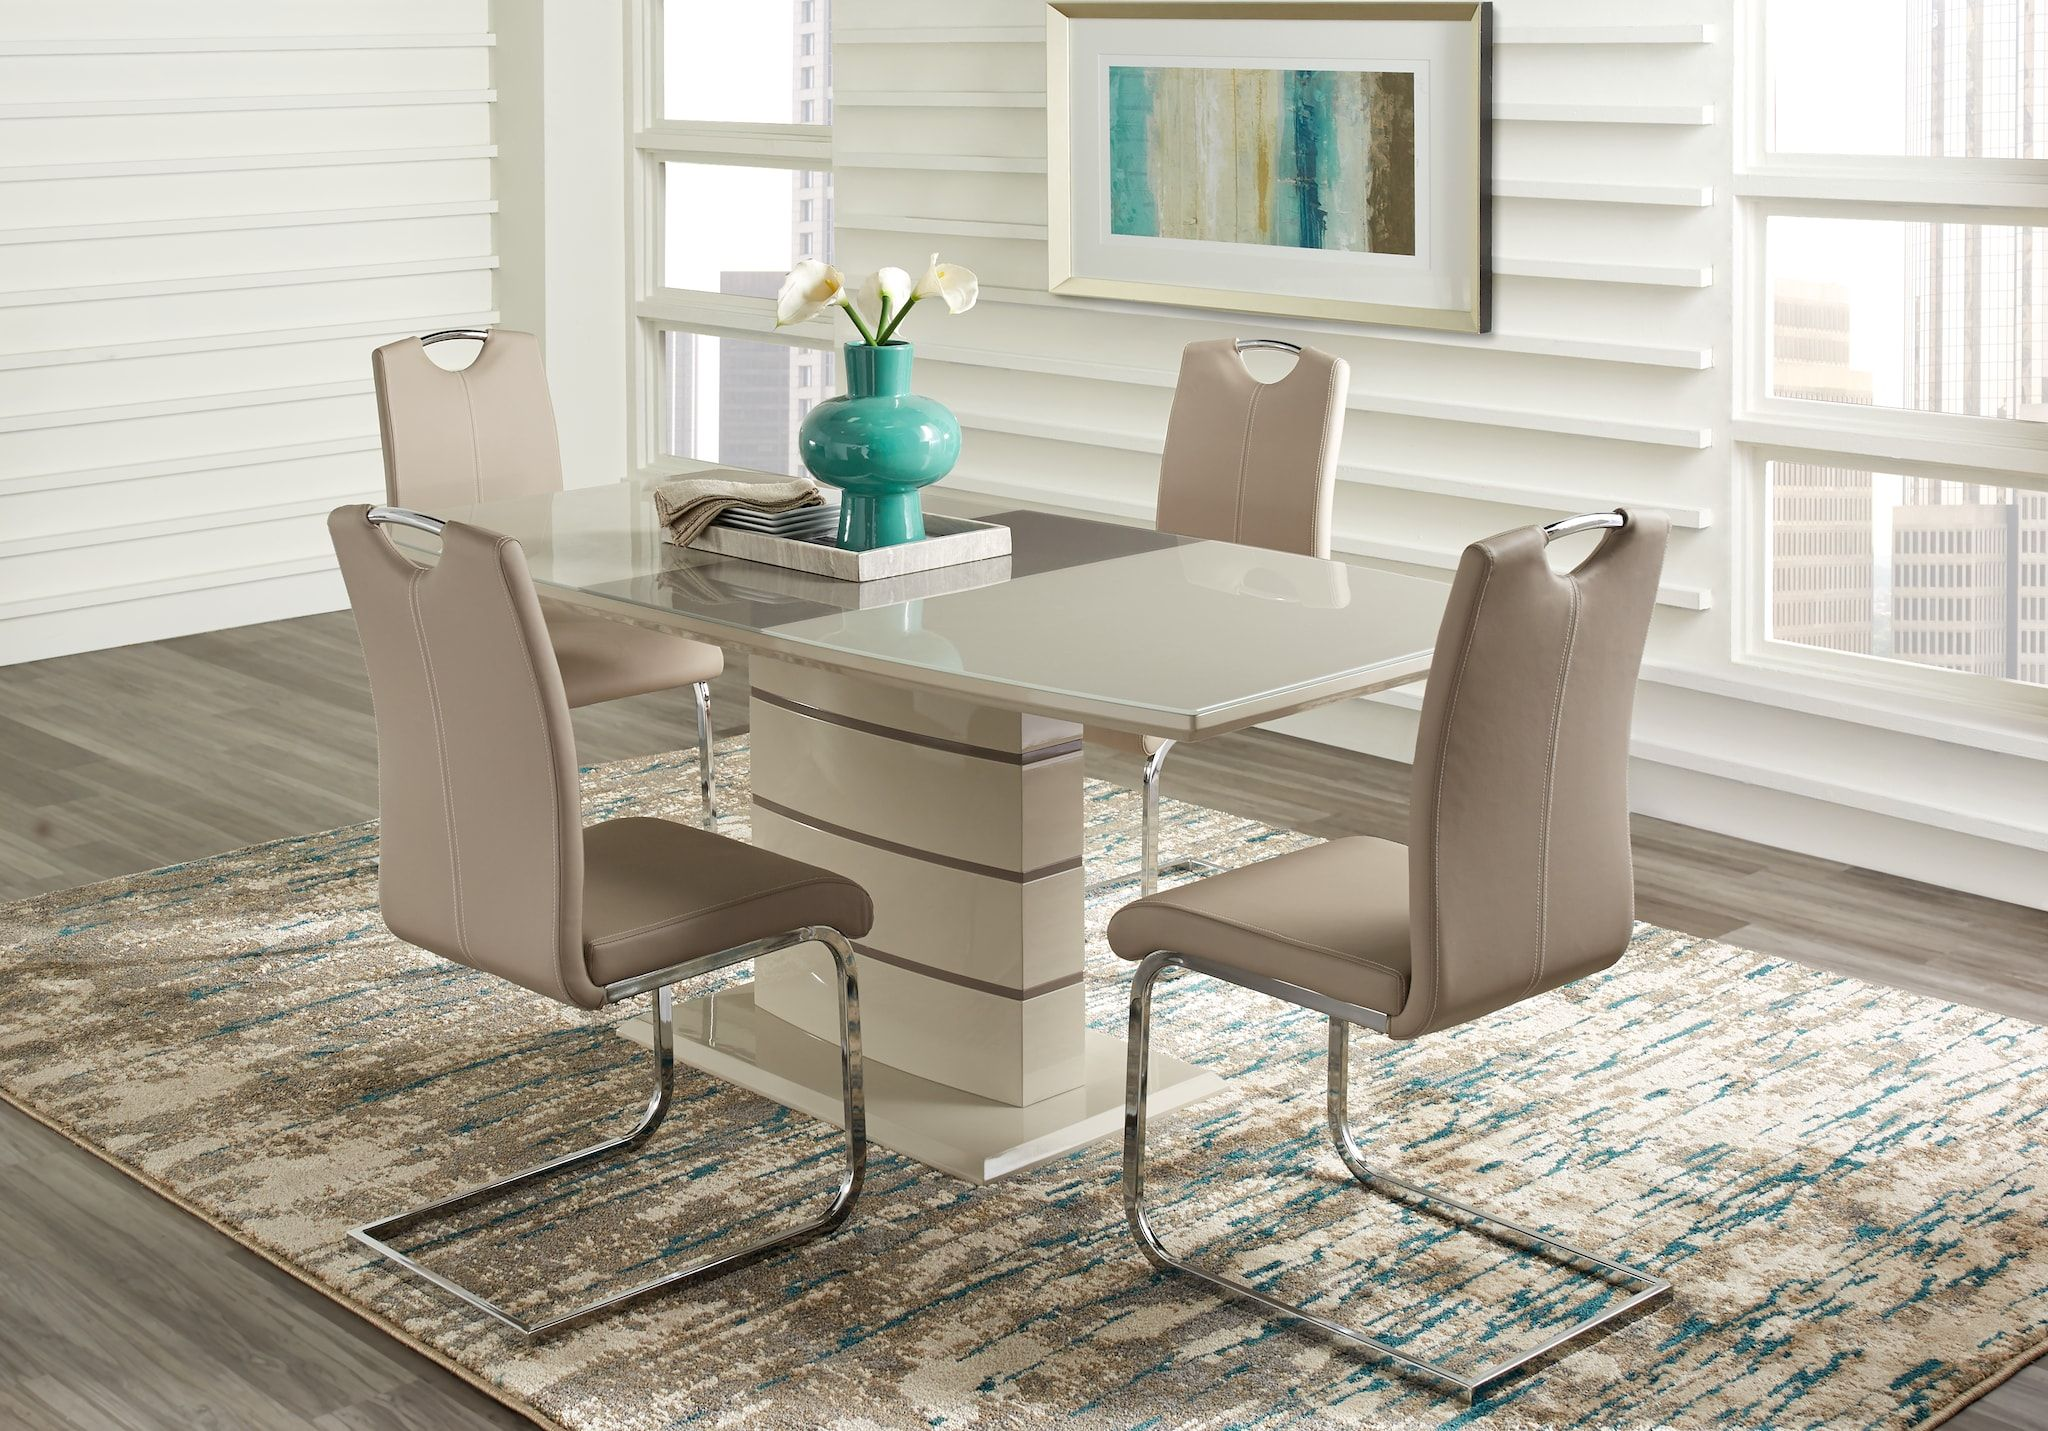 Dining Room Sets Suites Furniture Collections Dining Room Sets Dining Room Table Chairs Dining Room Suites Chairs and tables for sale